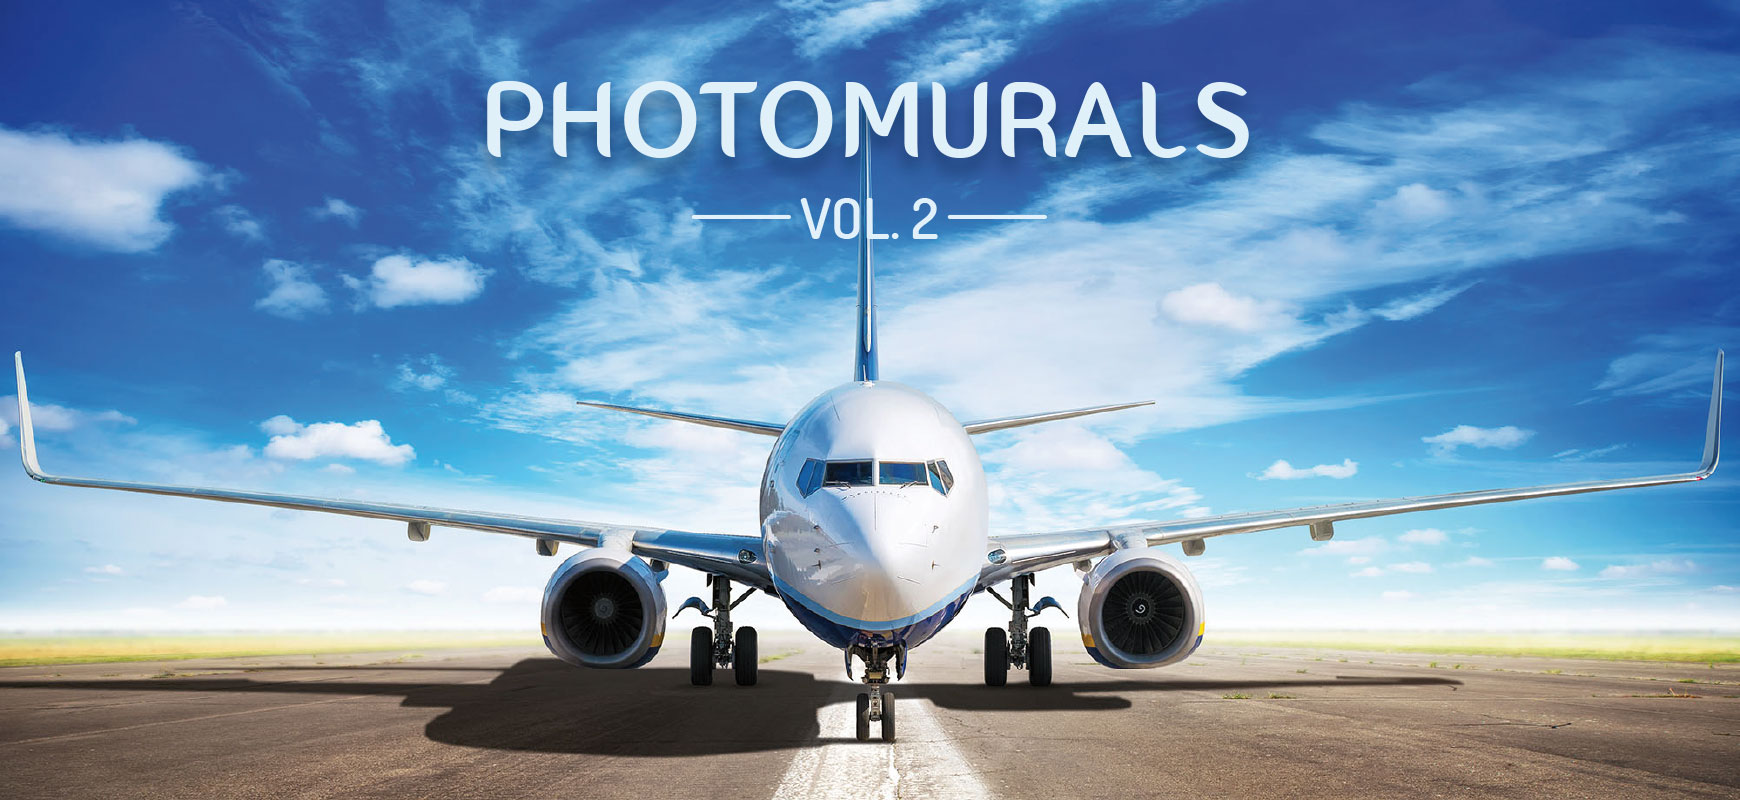 **Catalogues  et  Posters * Photomurals  Vol.2 *  Disponibles**